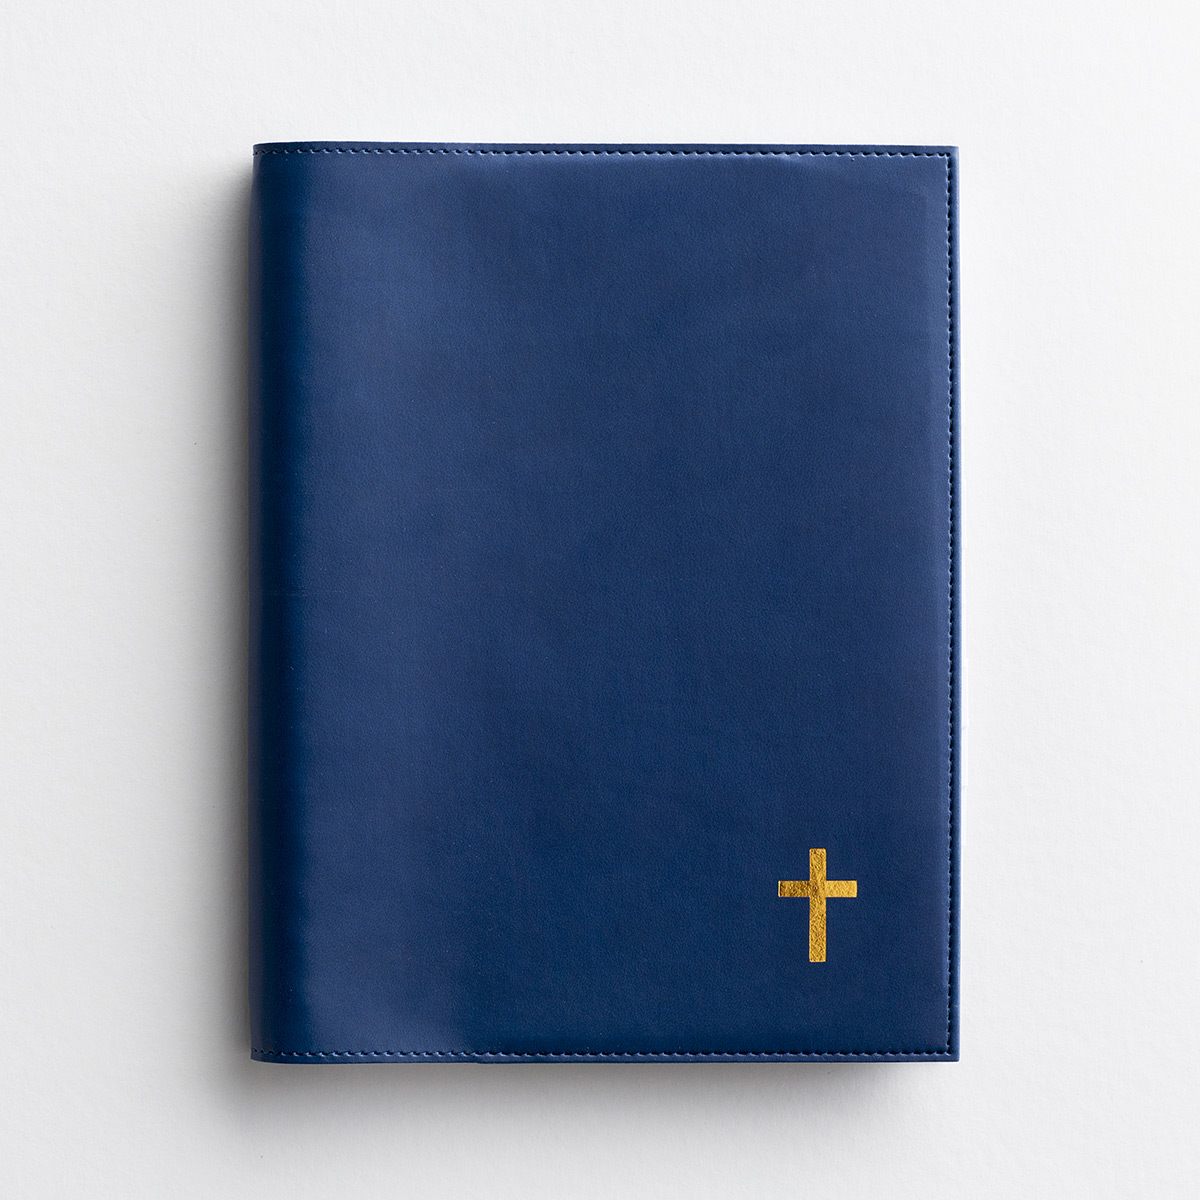 2020 Cross 12-Month Premium Appointment Planner - Dark Blue